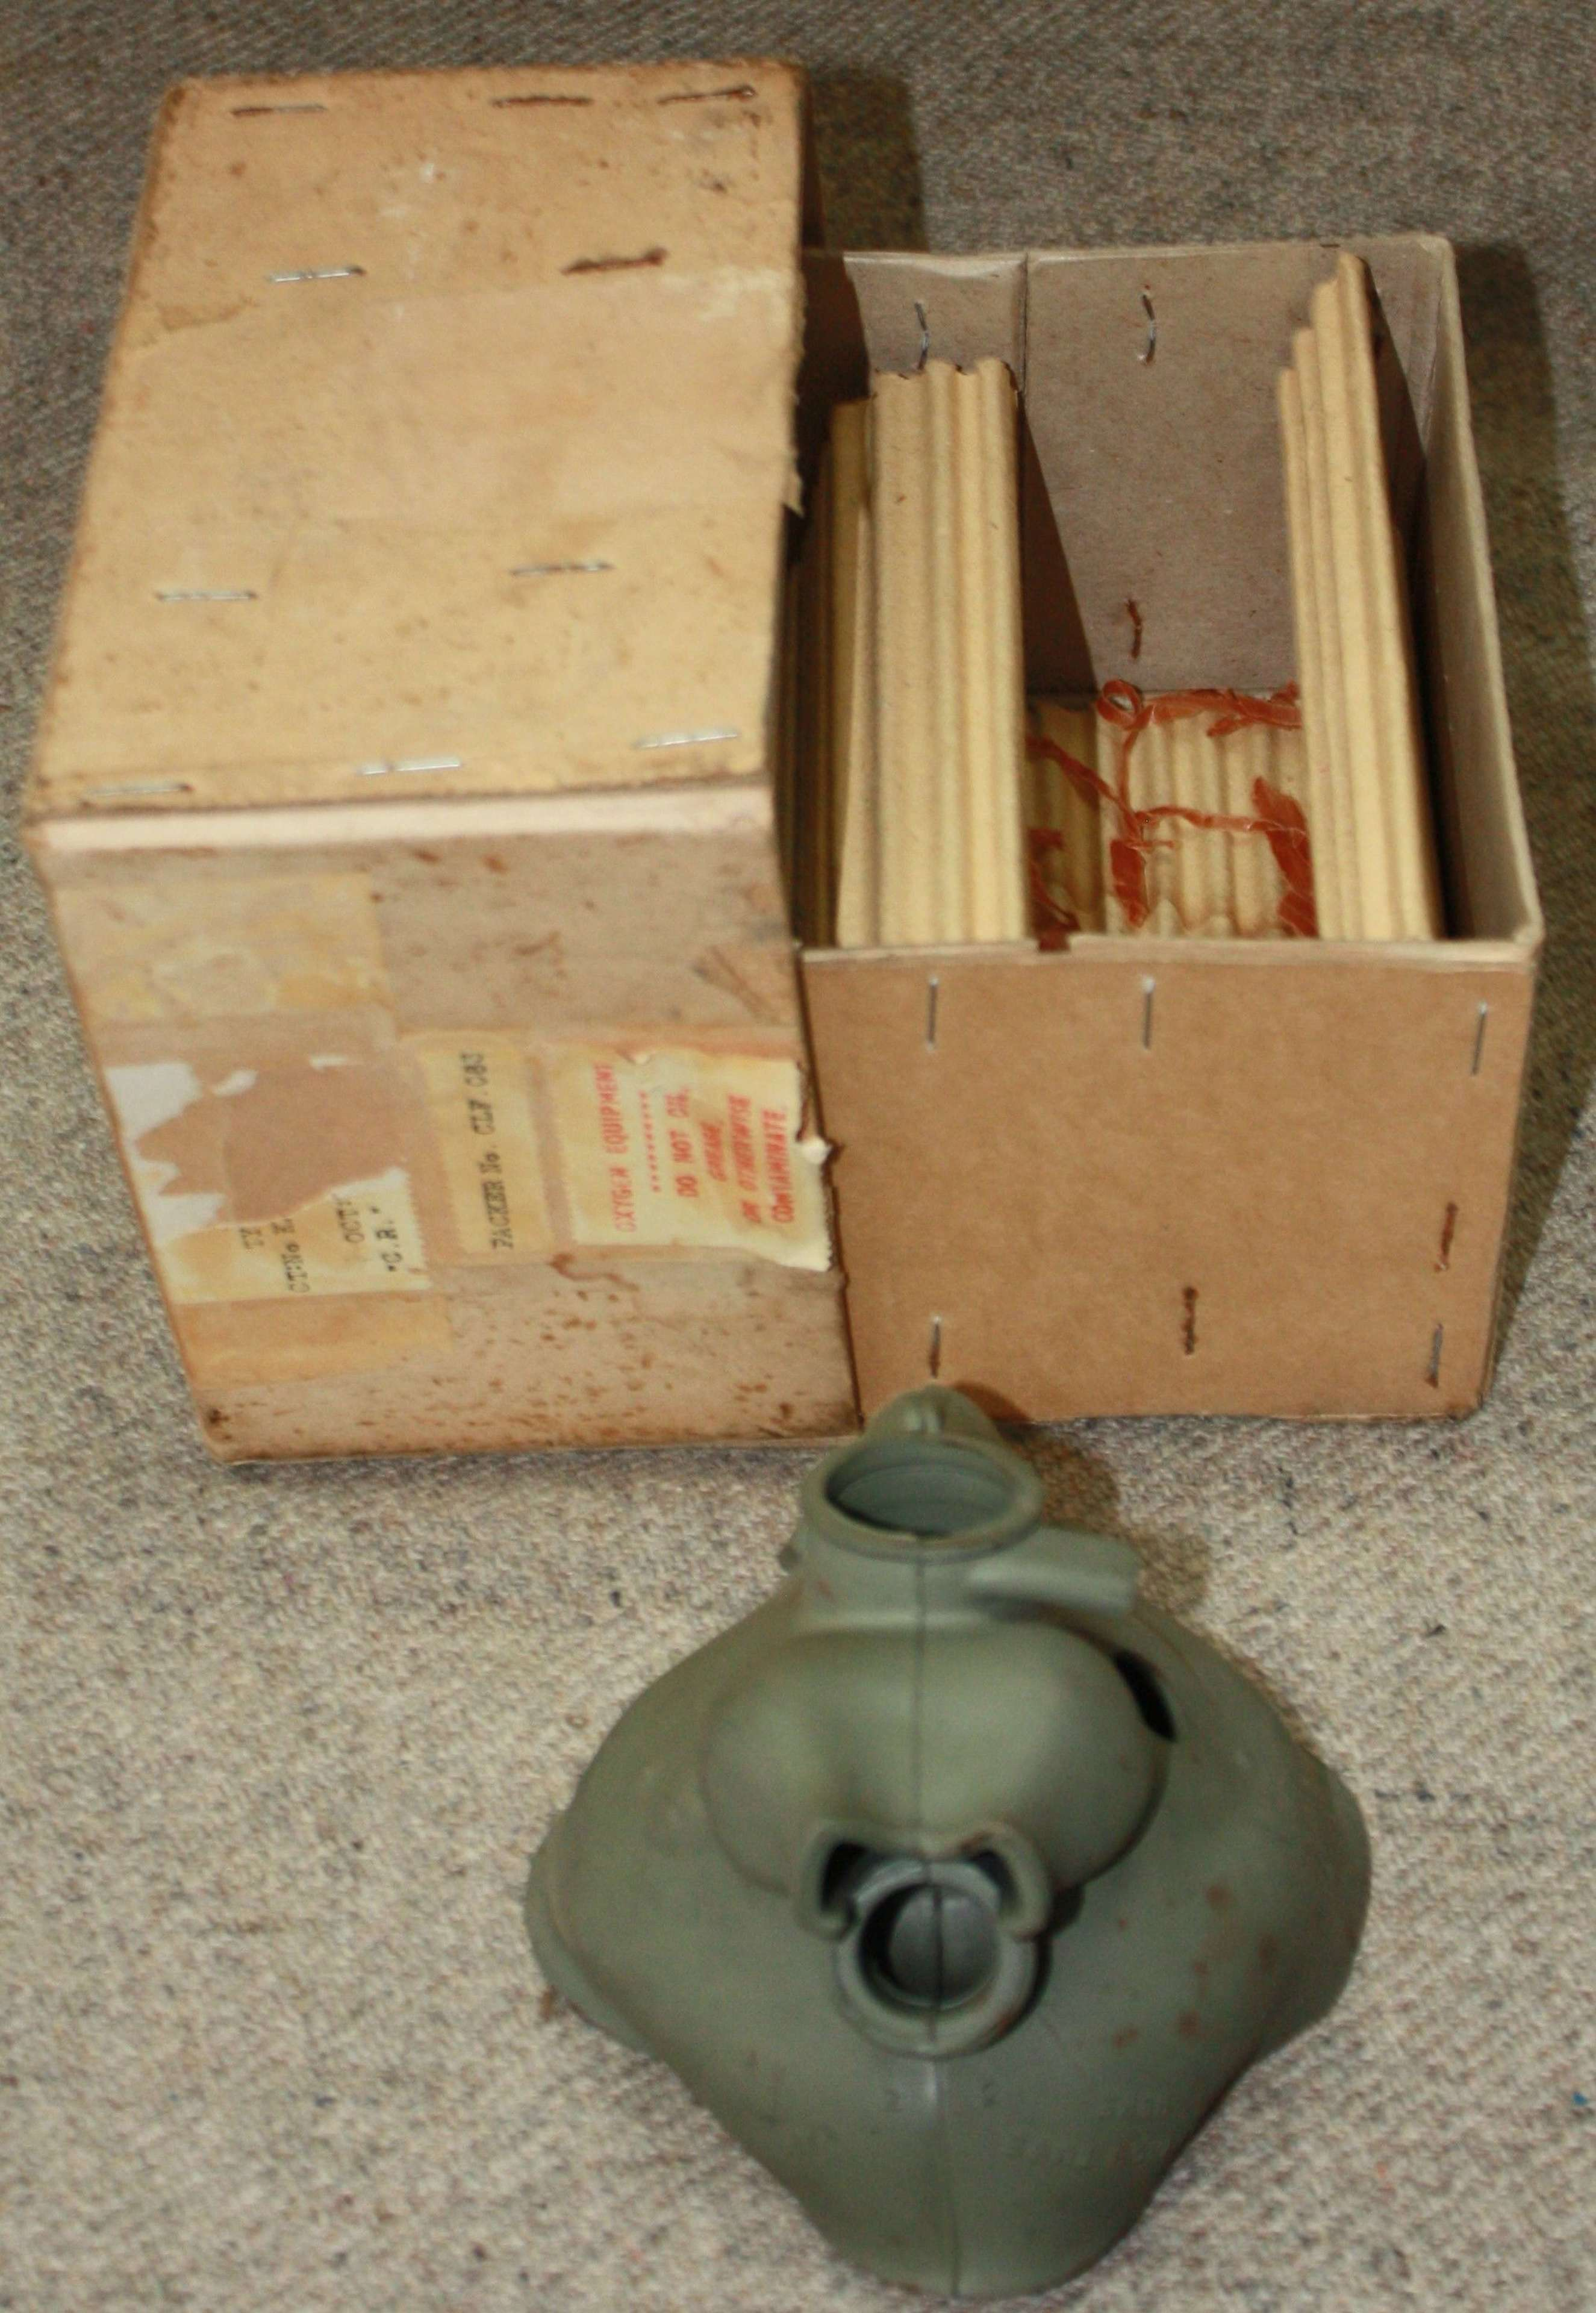 A VERY GOOD CONDITION 1967 DATED H TYPE FLYING MASK